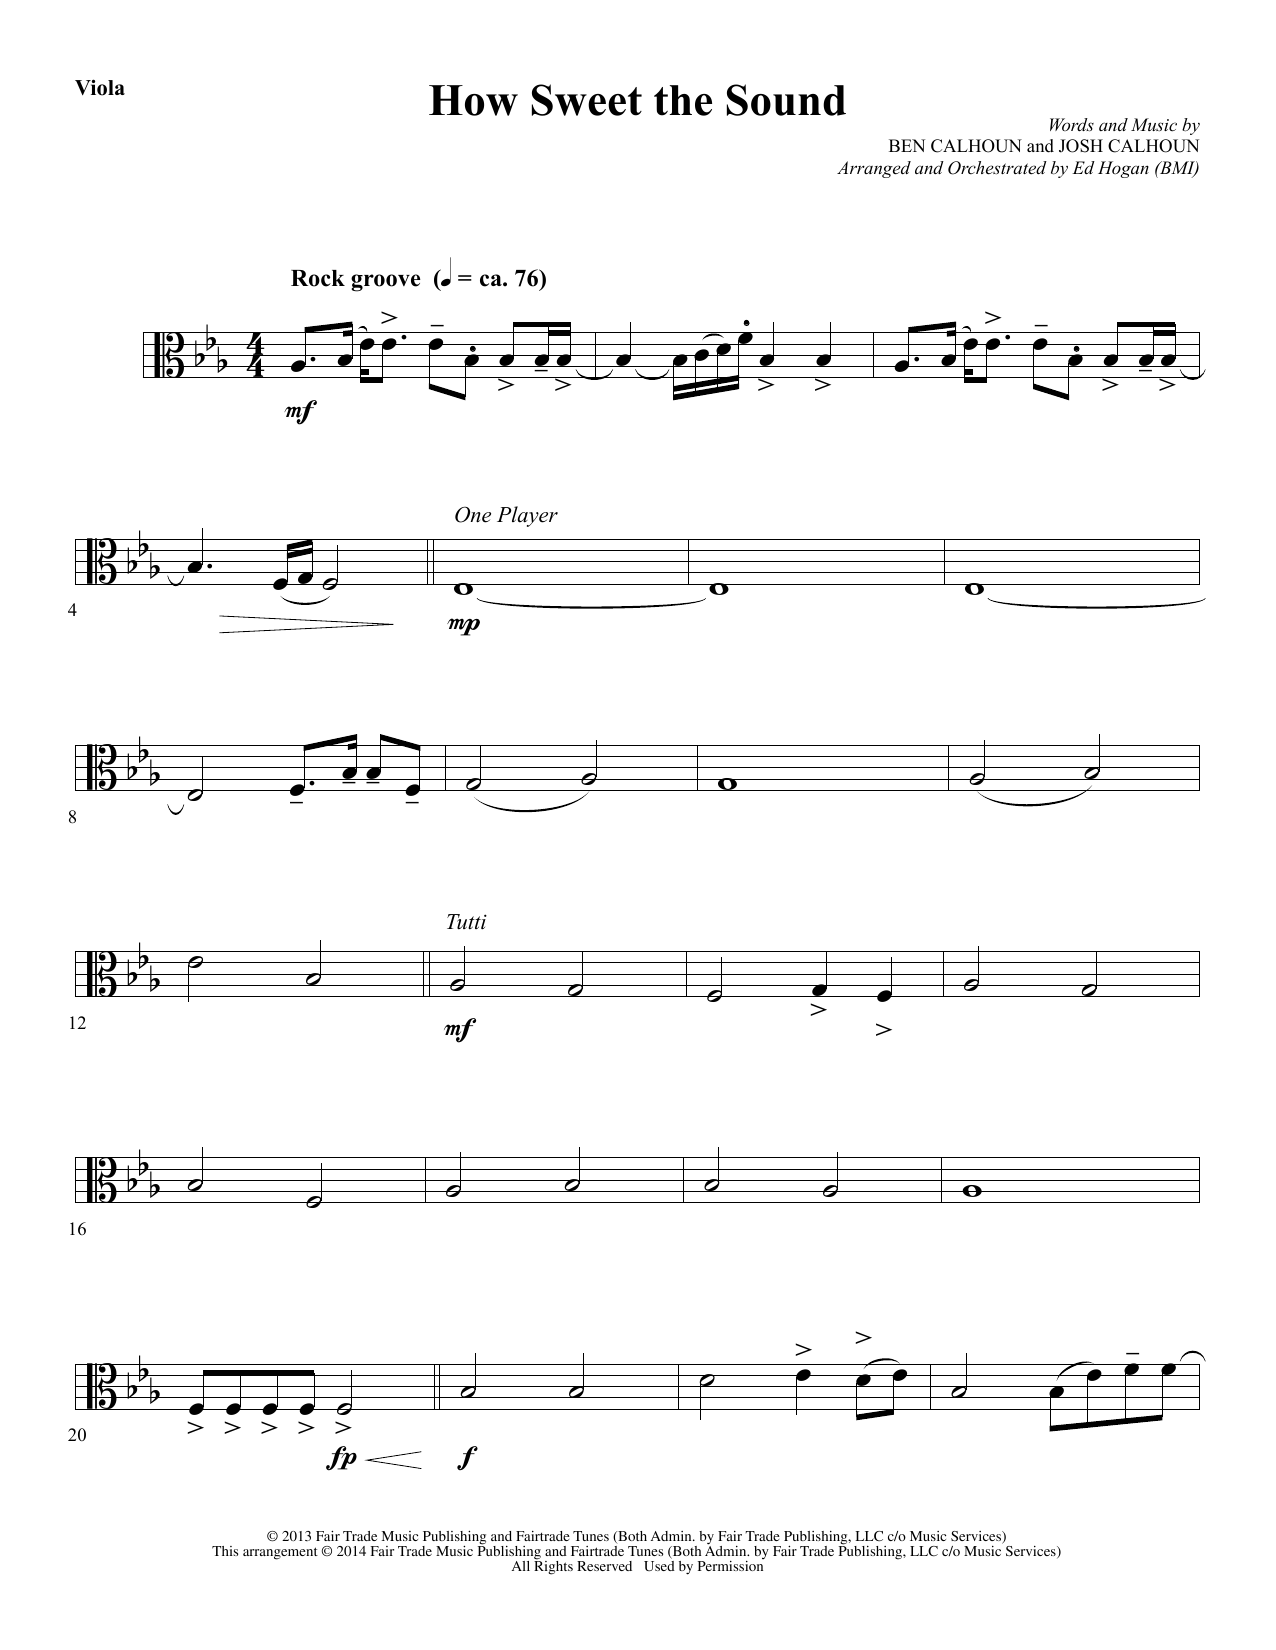 Ed Hogan How Sweet the Sound - Viola sheet music notes and chords. Download Printable PDF.